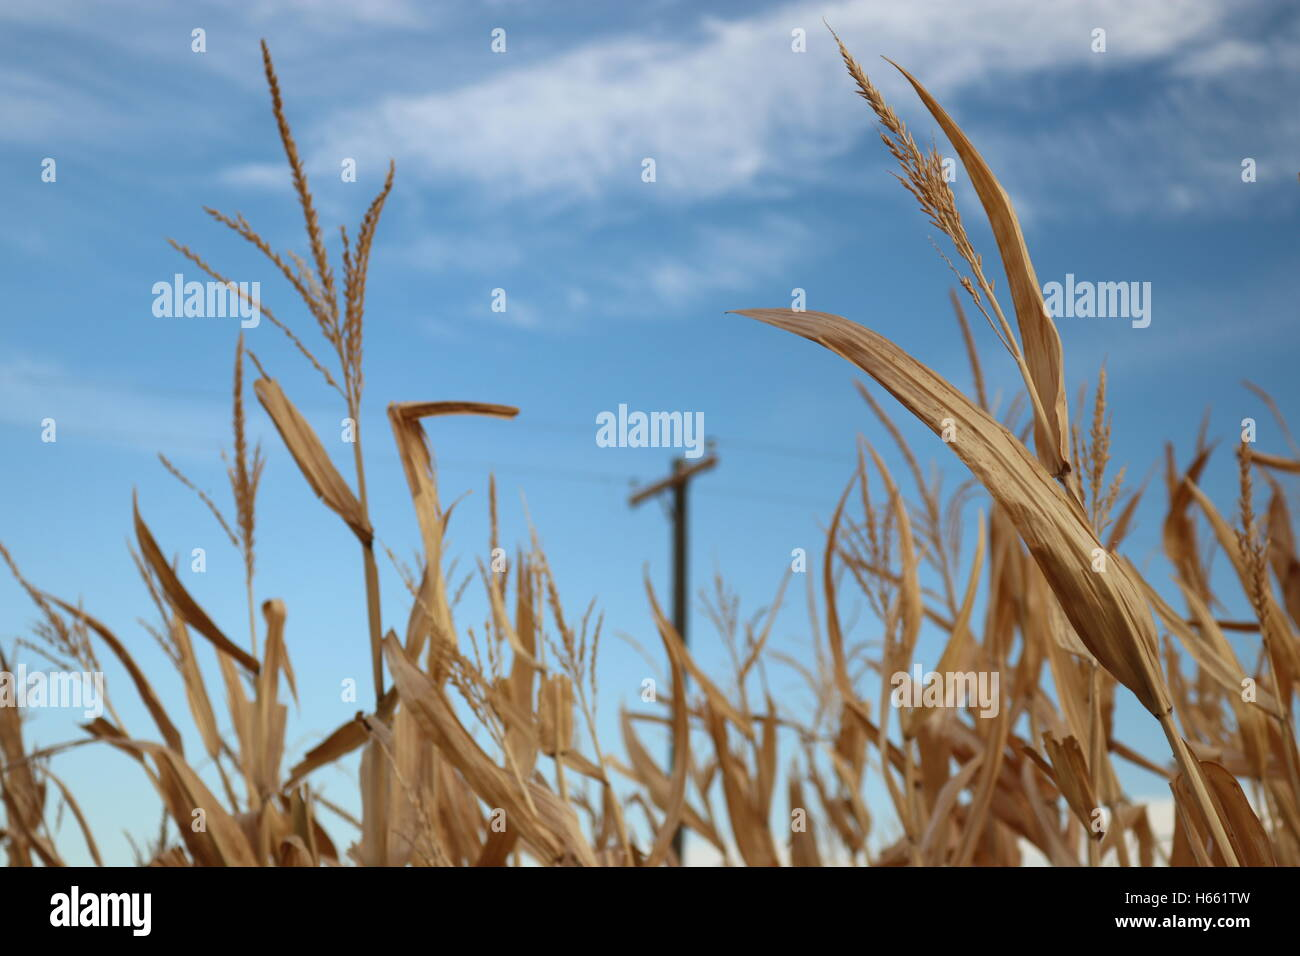 Corn stalk tops against a power pole in the background with blue sky and clouds. - Stock Image